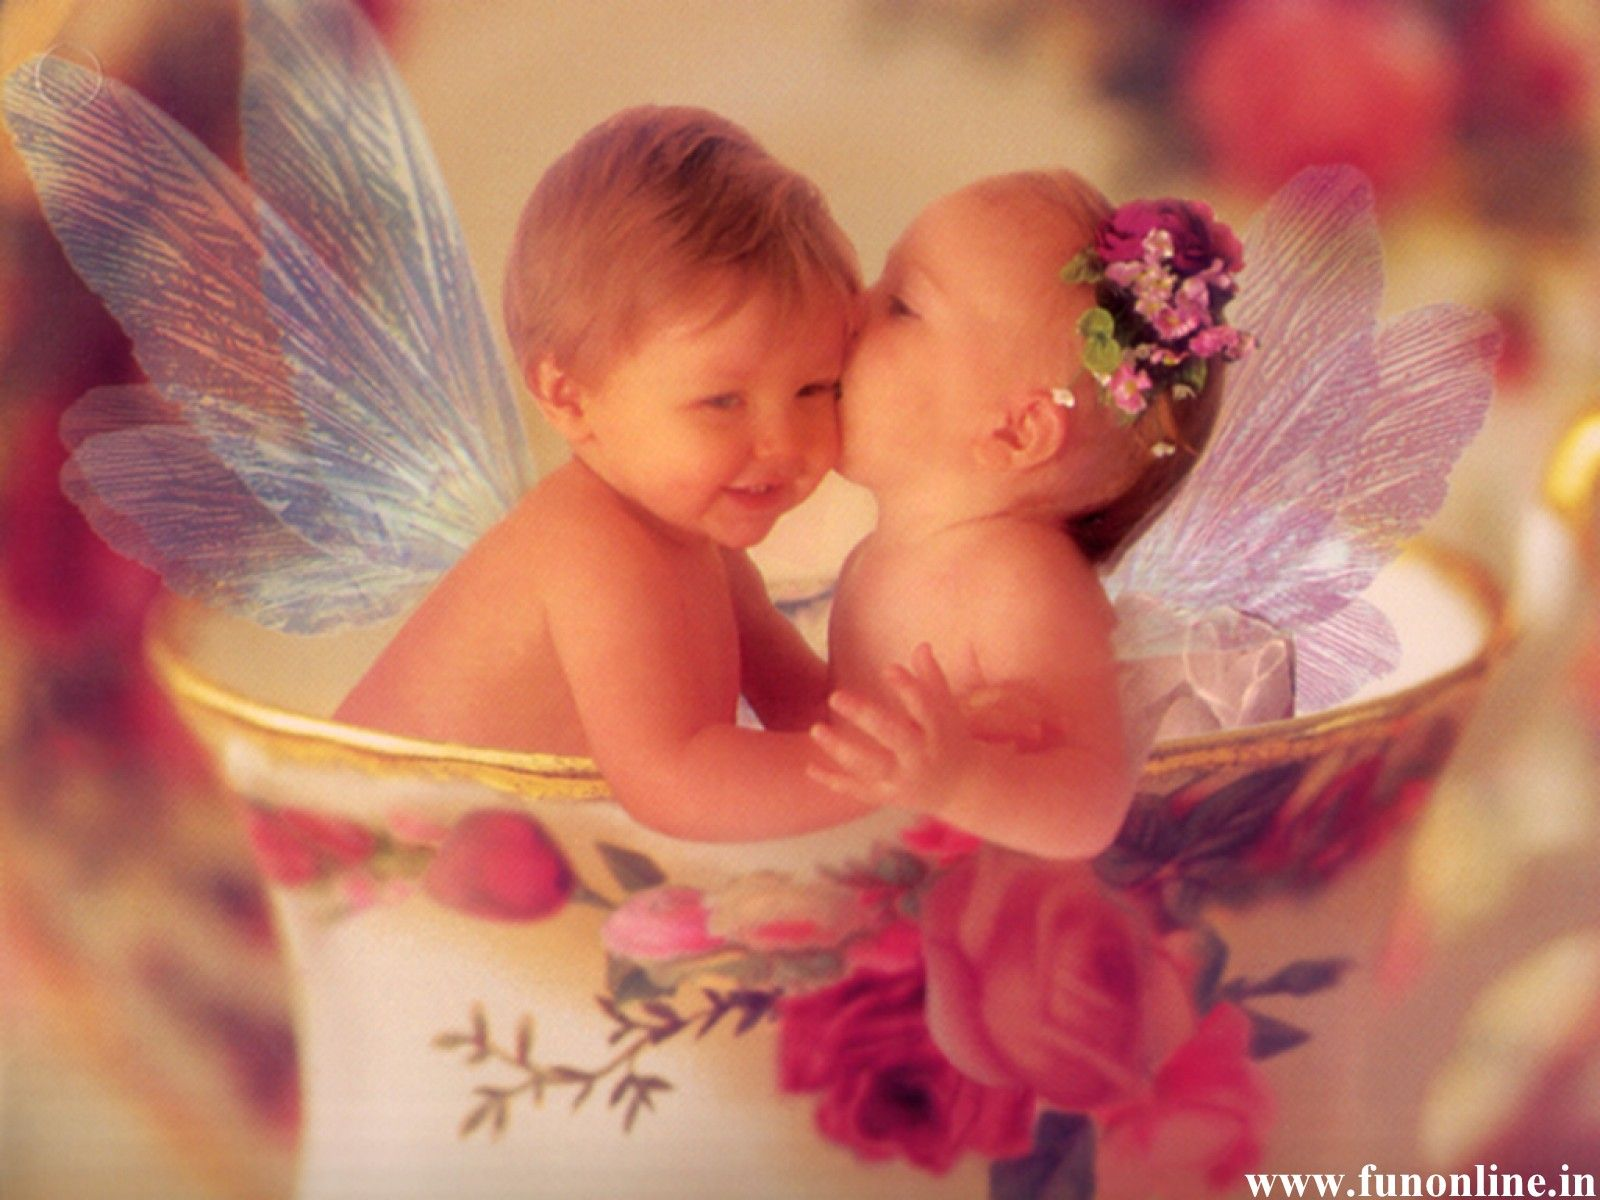 Baby love wallpapers gratifying baby love hd wallpapers for free